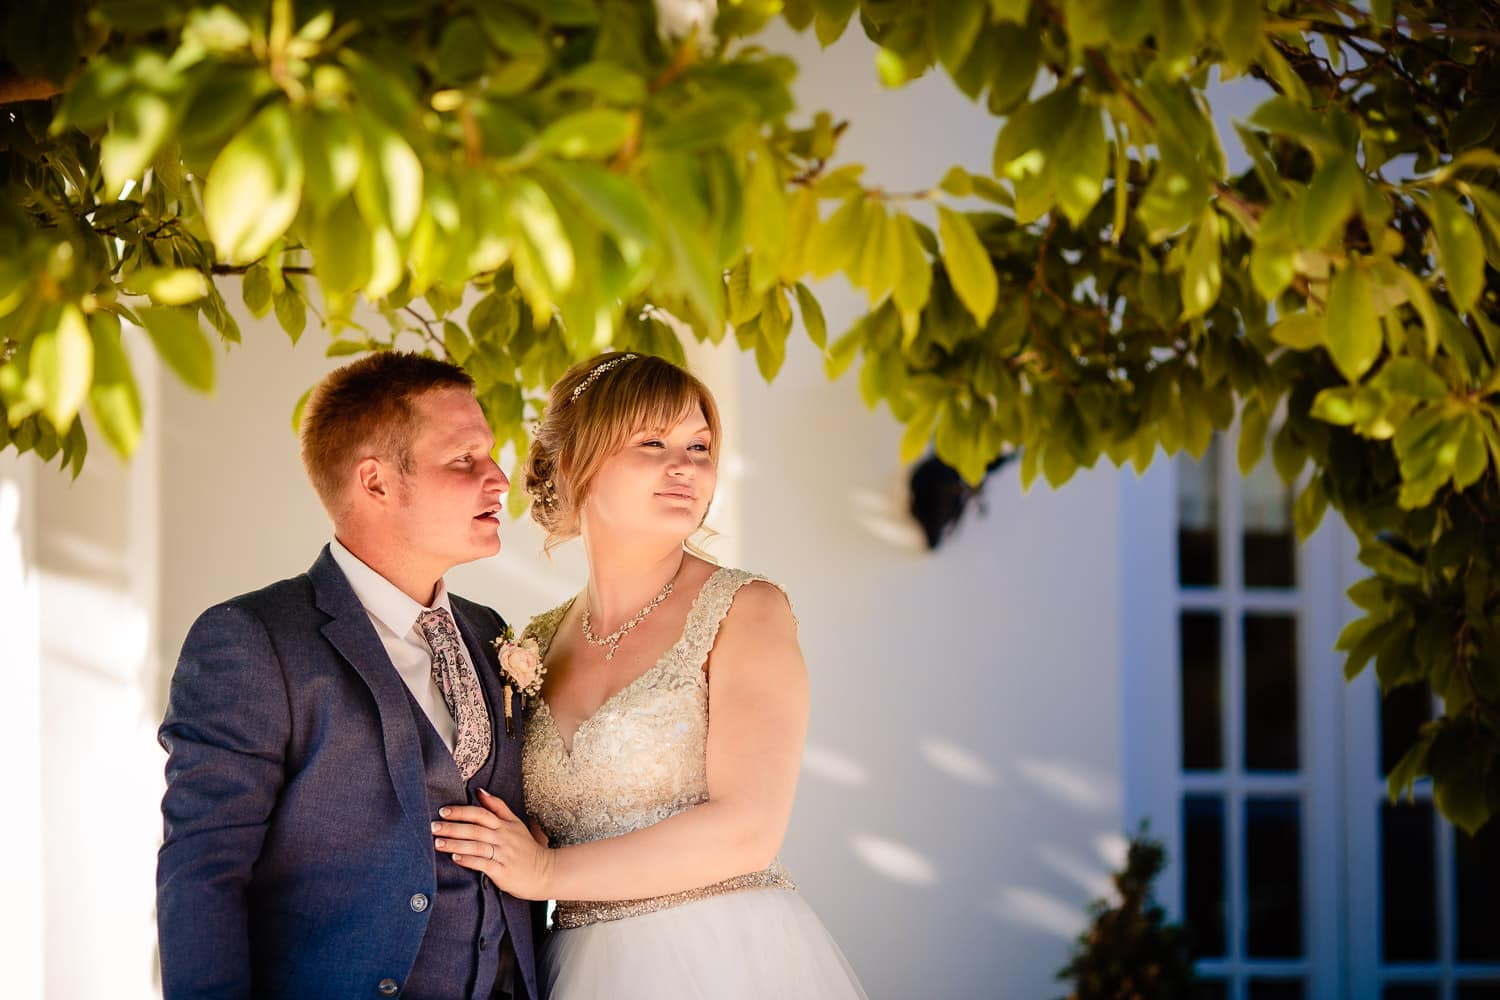 beautiful bride and groom posing together under a tree by Warwick House Wedding Photography